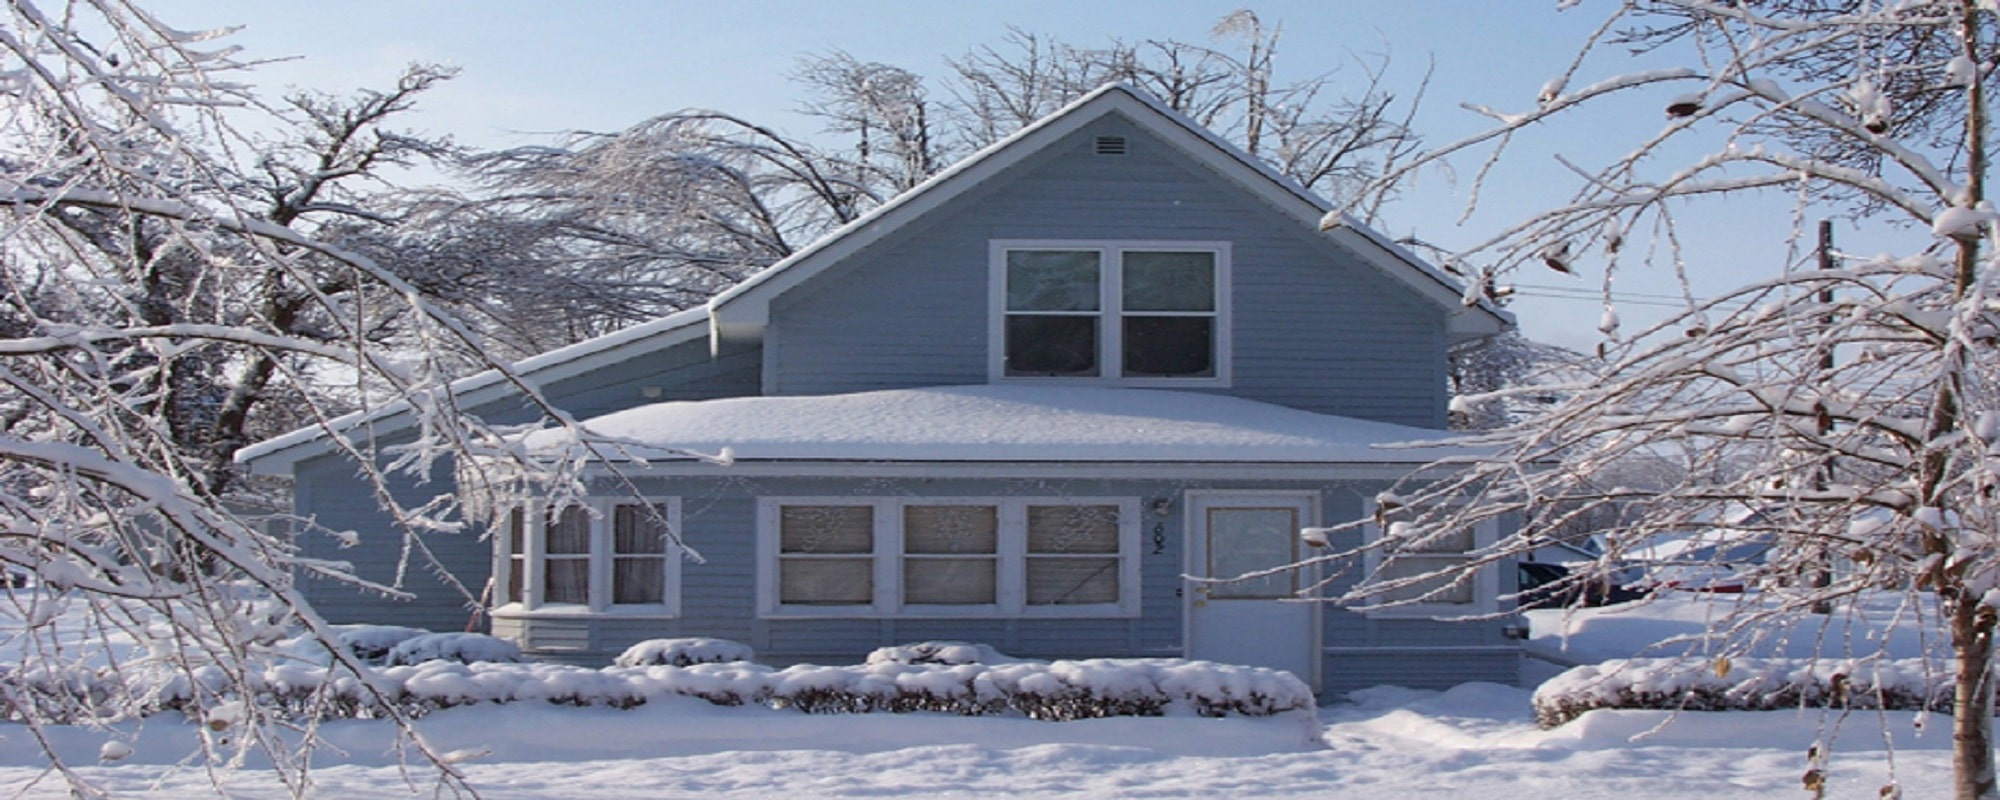 Prevent winter storm damage in your south jersey home